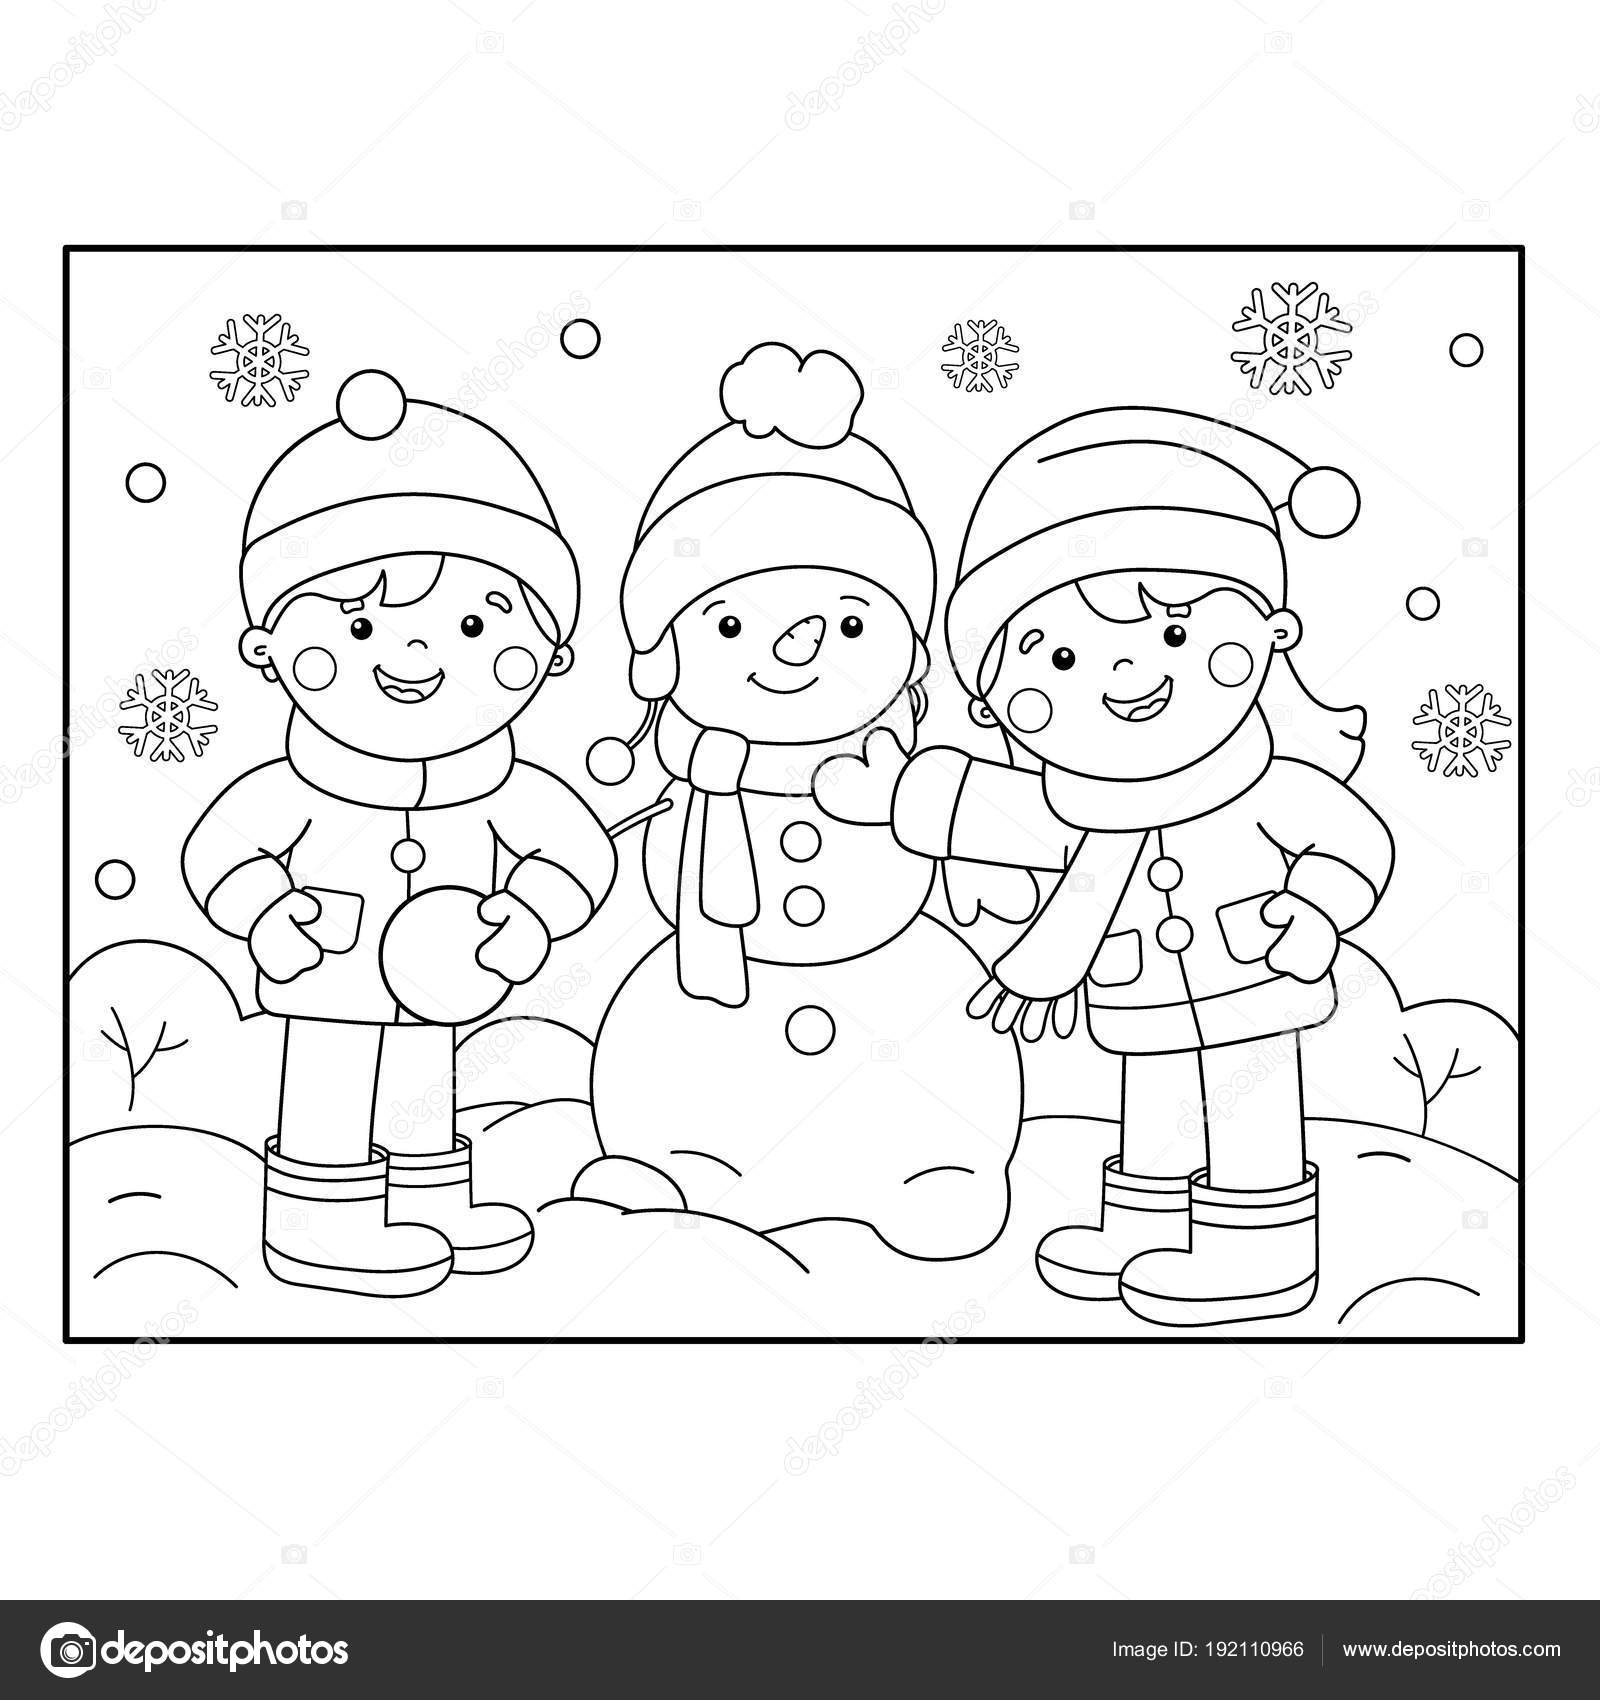 coloring page outline of cartoon boy with girl making snowman